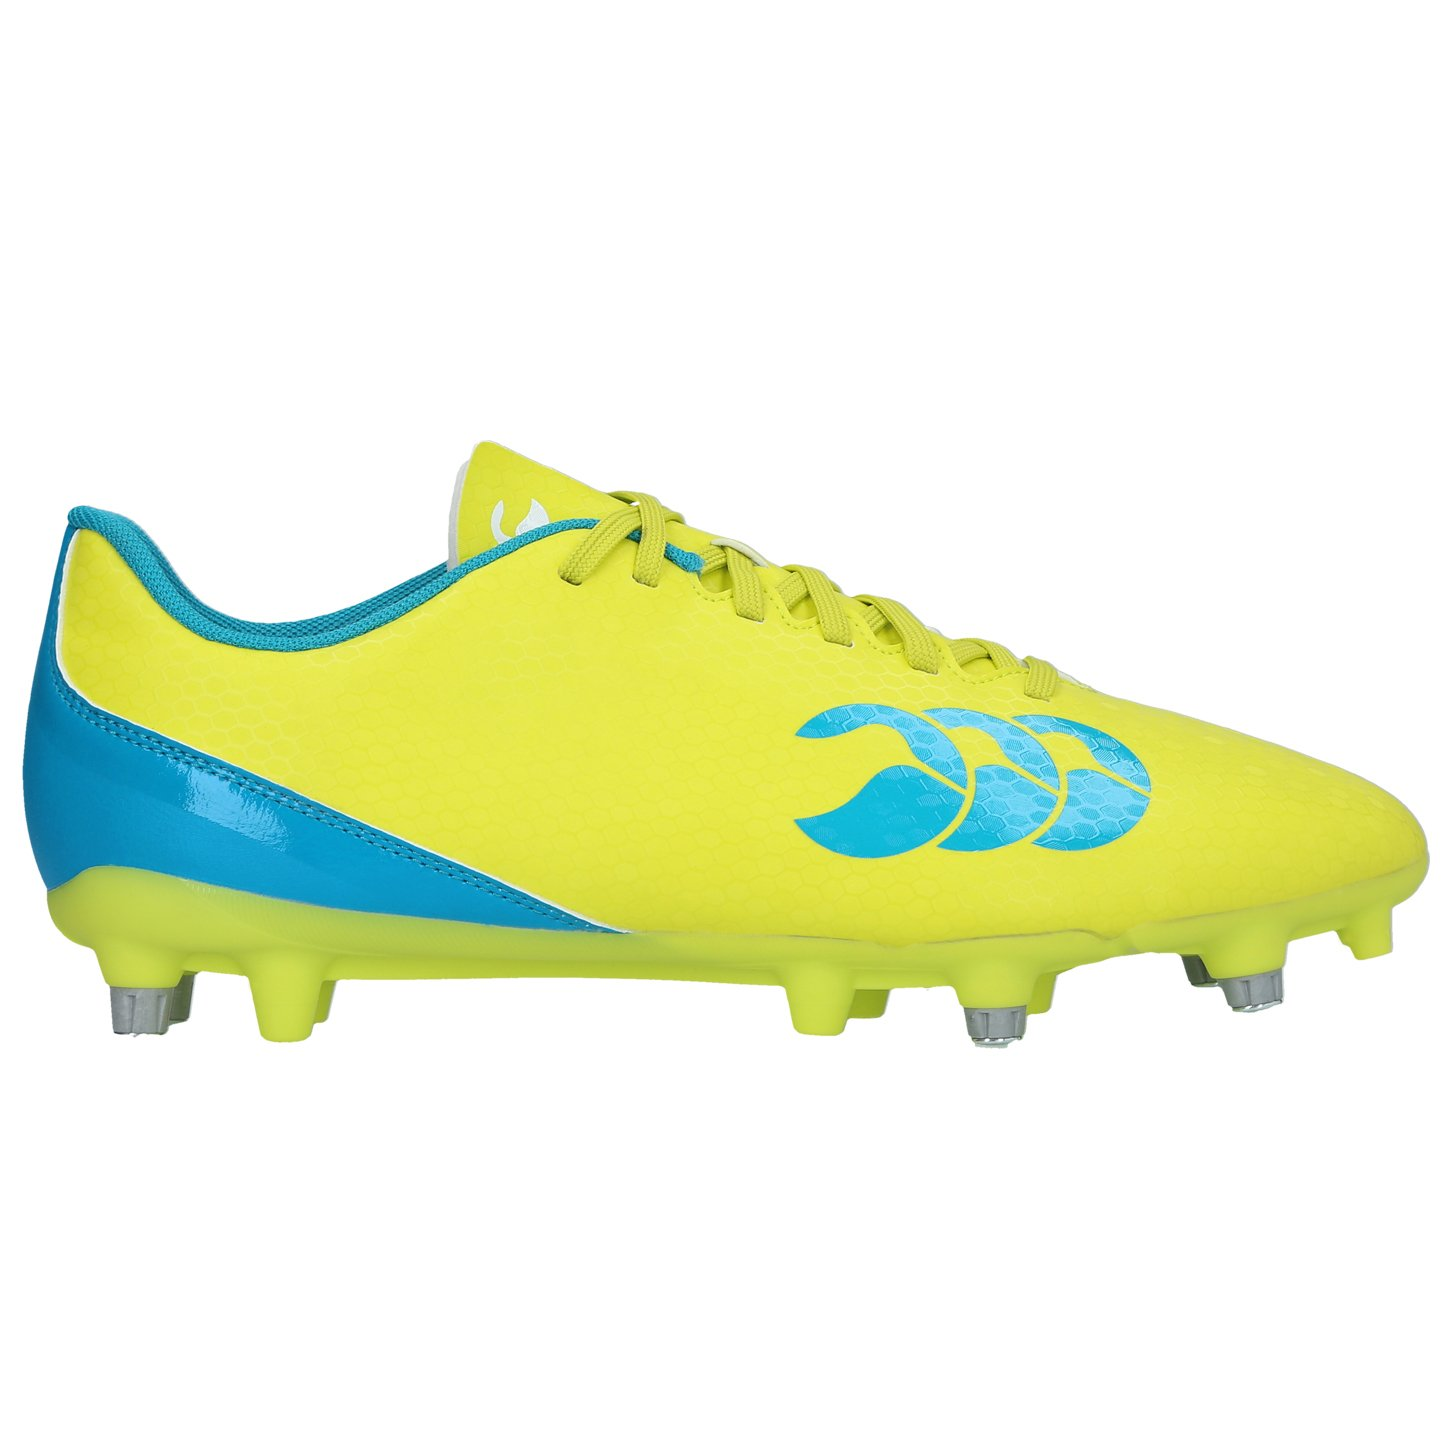 Canterbury Speed 2.0 SG Rugby Boots - Yellow/Blue - UK 6 by Canterbury